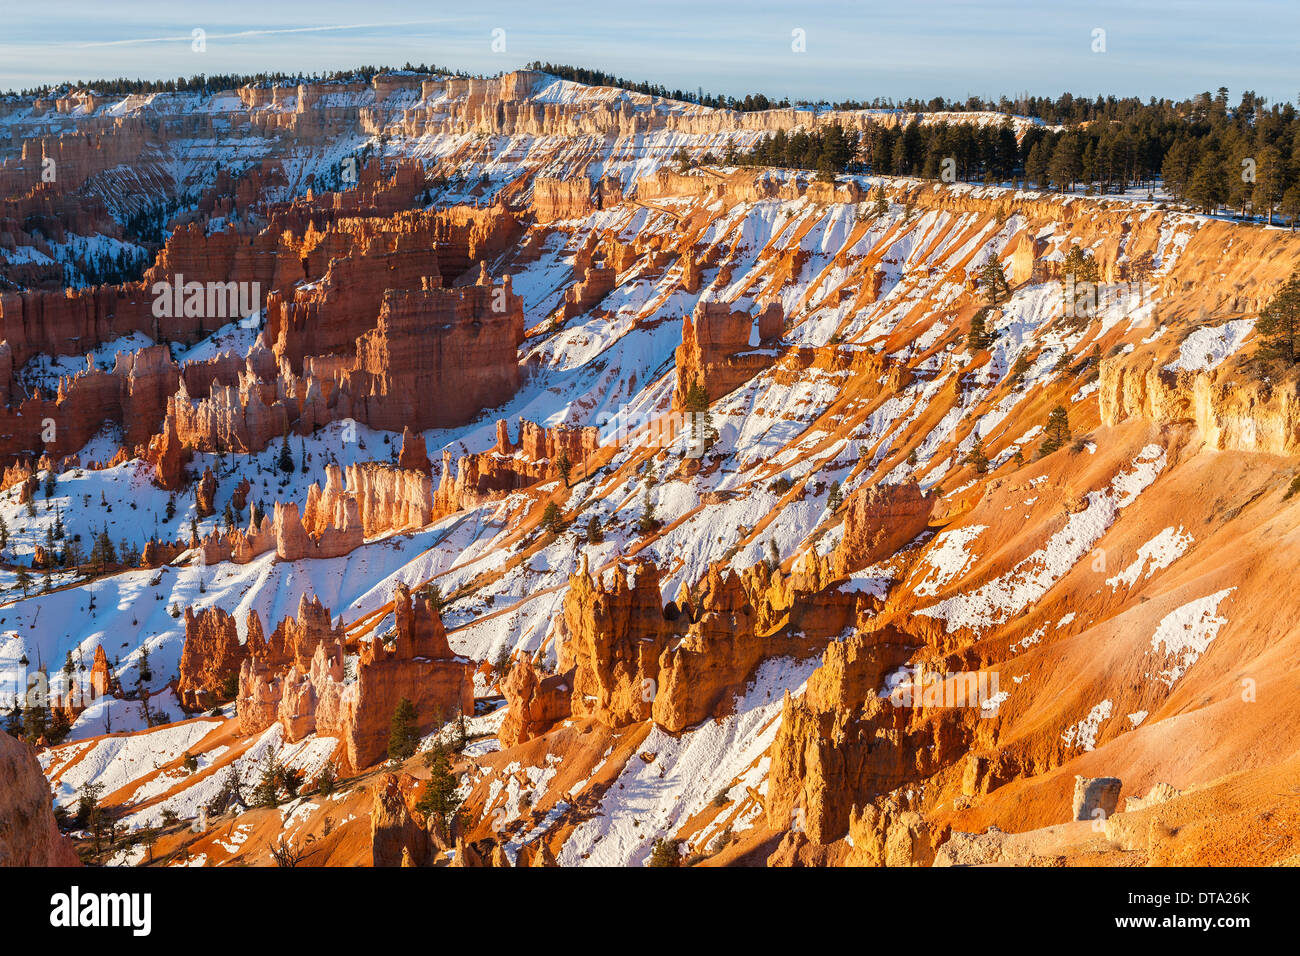 Winter im Bryce-Canyon-Nationalpark, Utah - USA Stockbild